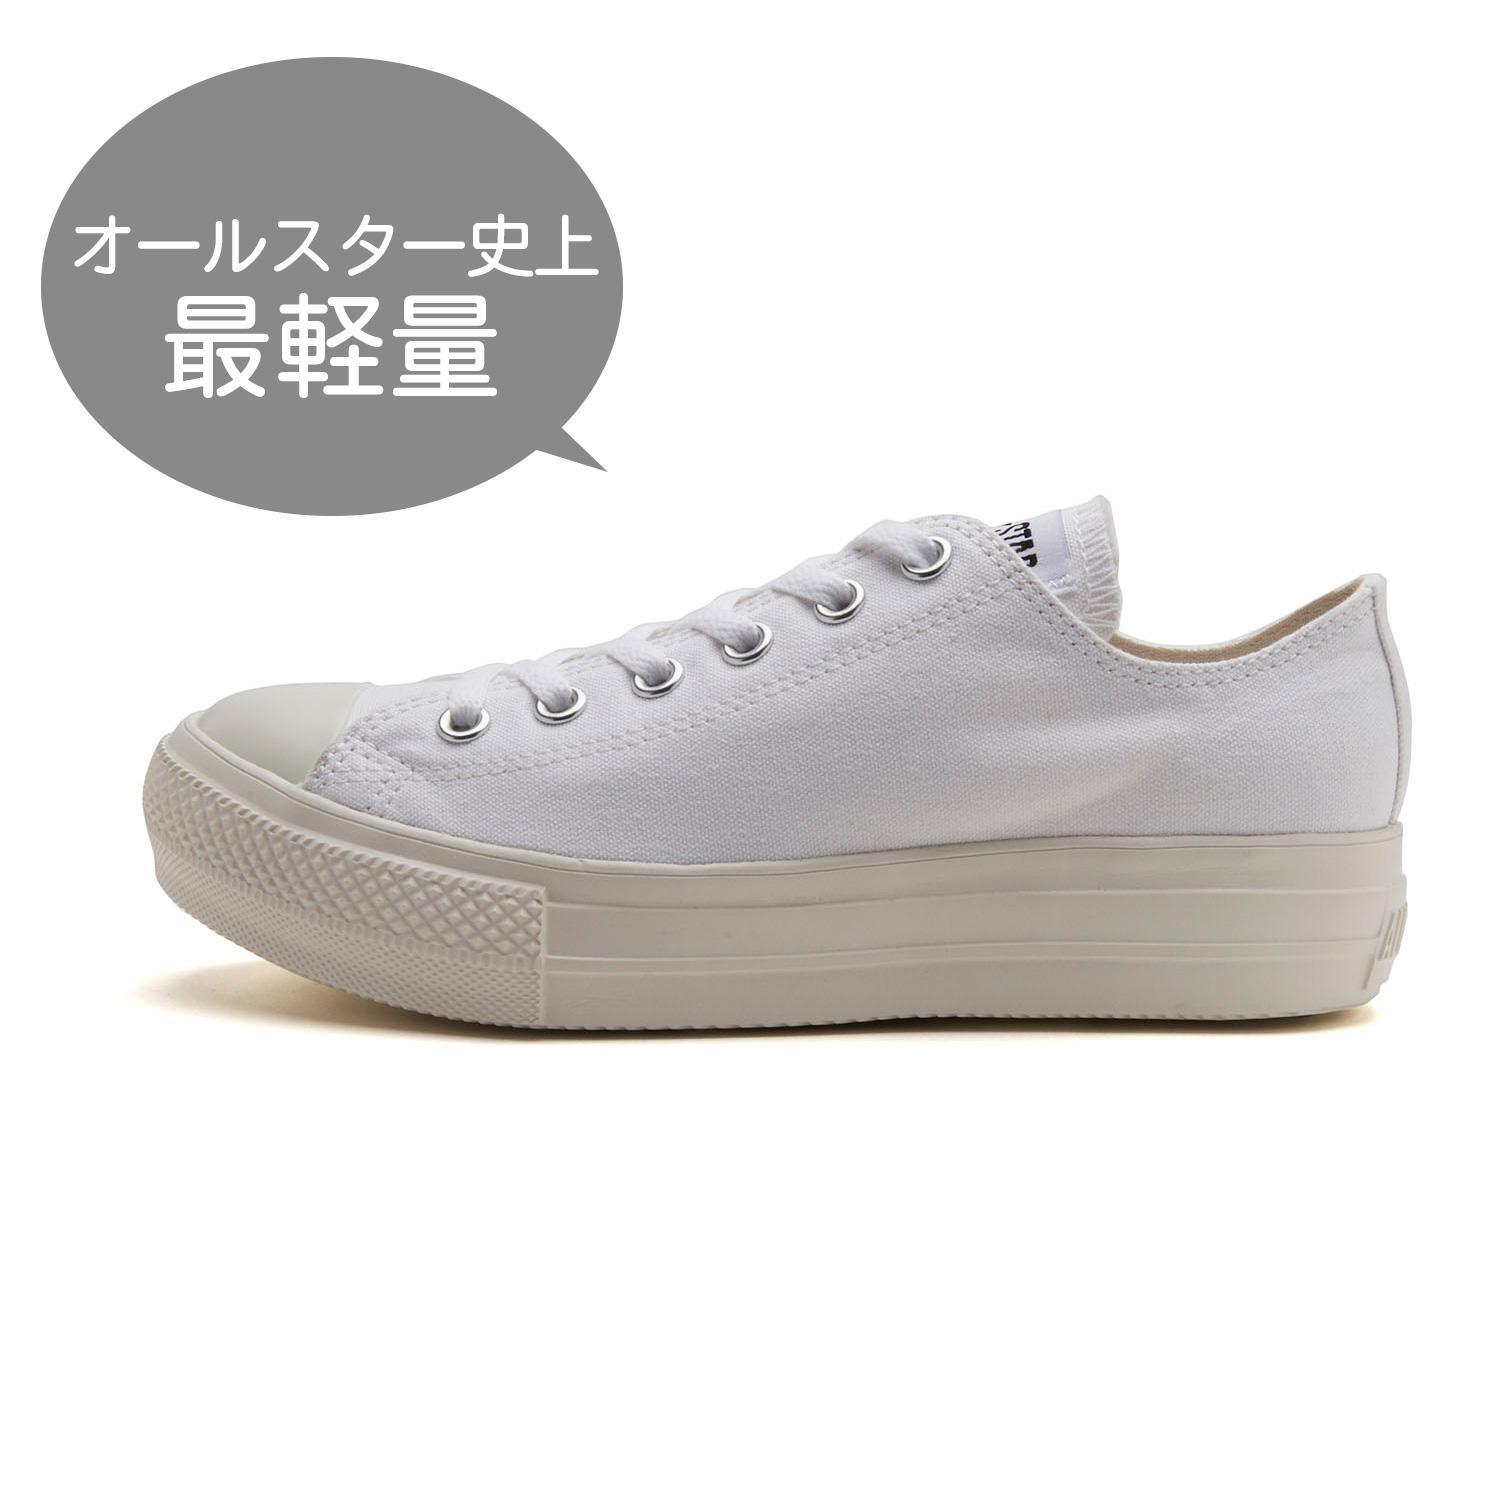 CONVERSE オールスター ライト PLTS OX